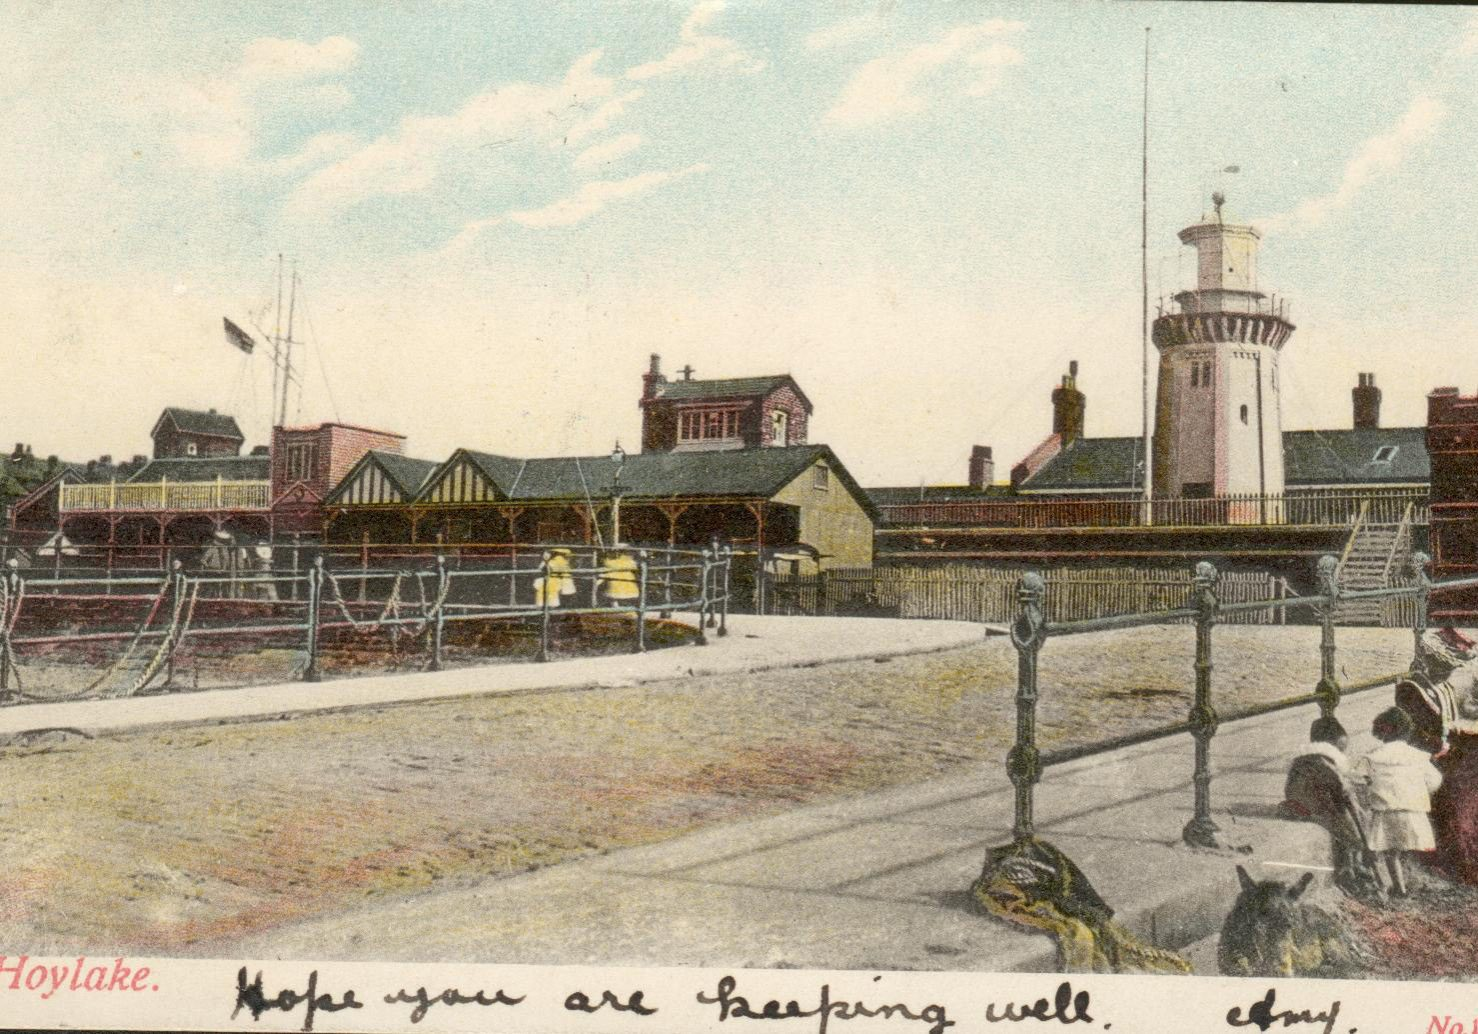 Lifeboat Station slipway, early 1900s. Note the beach level is at the bottom of the slipway. The first of these railings is now almost completely submerged.